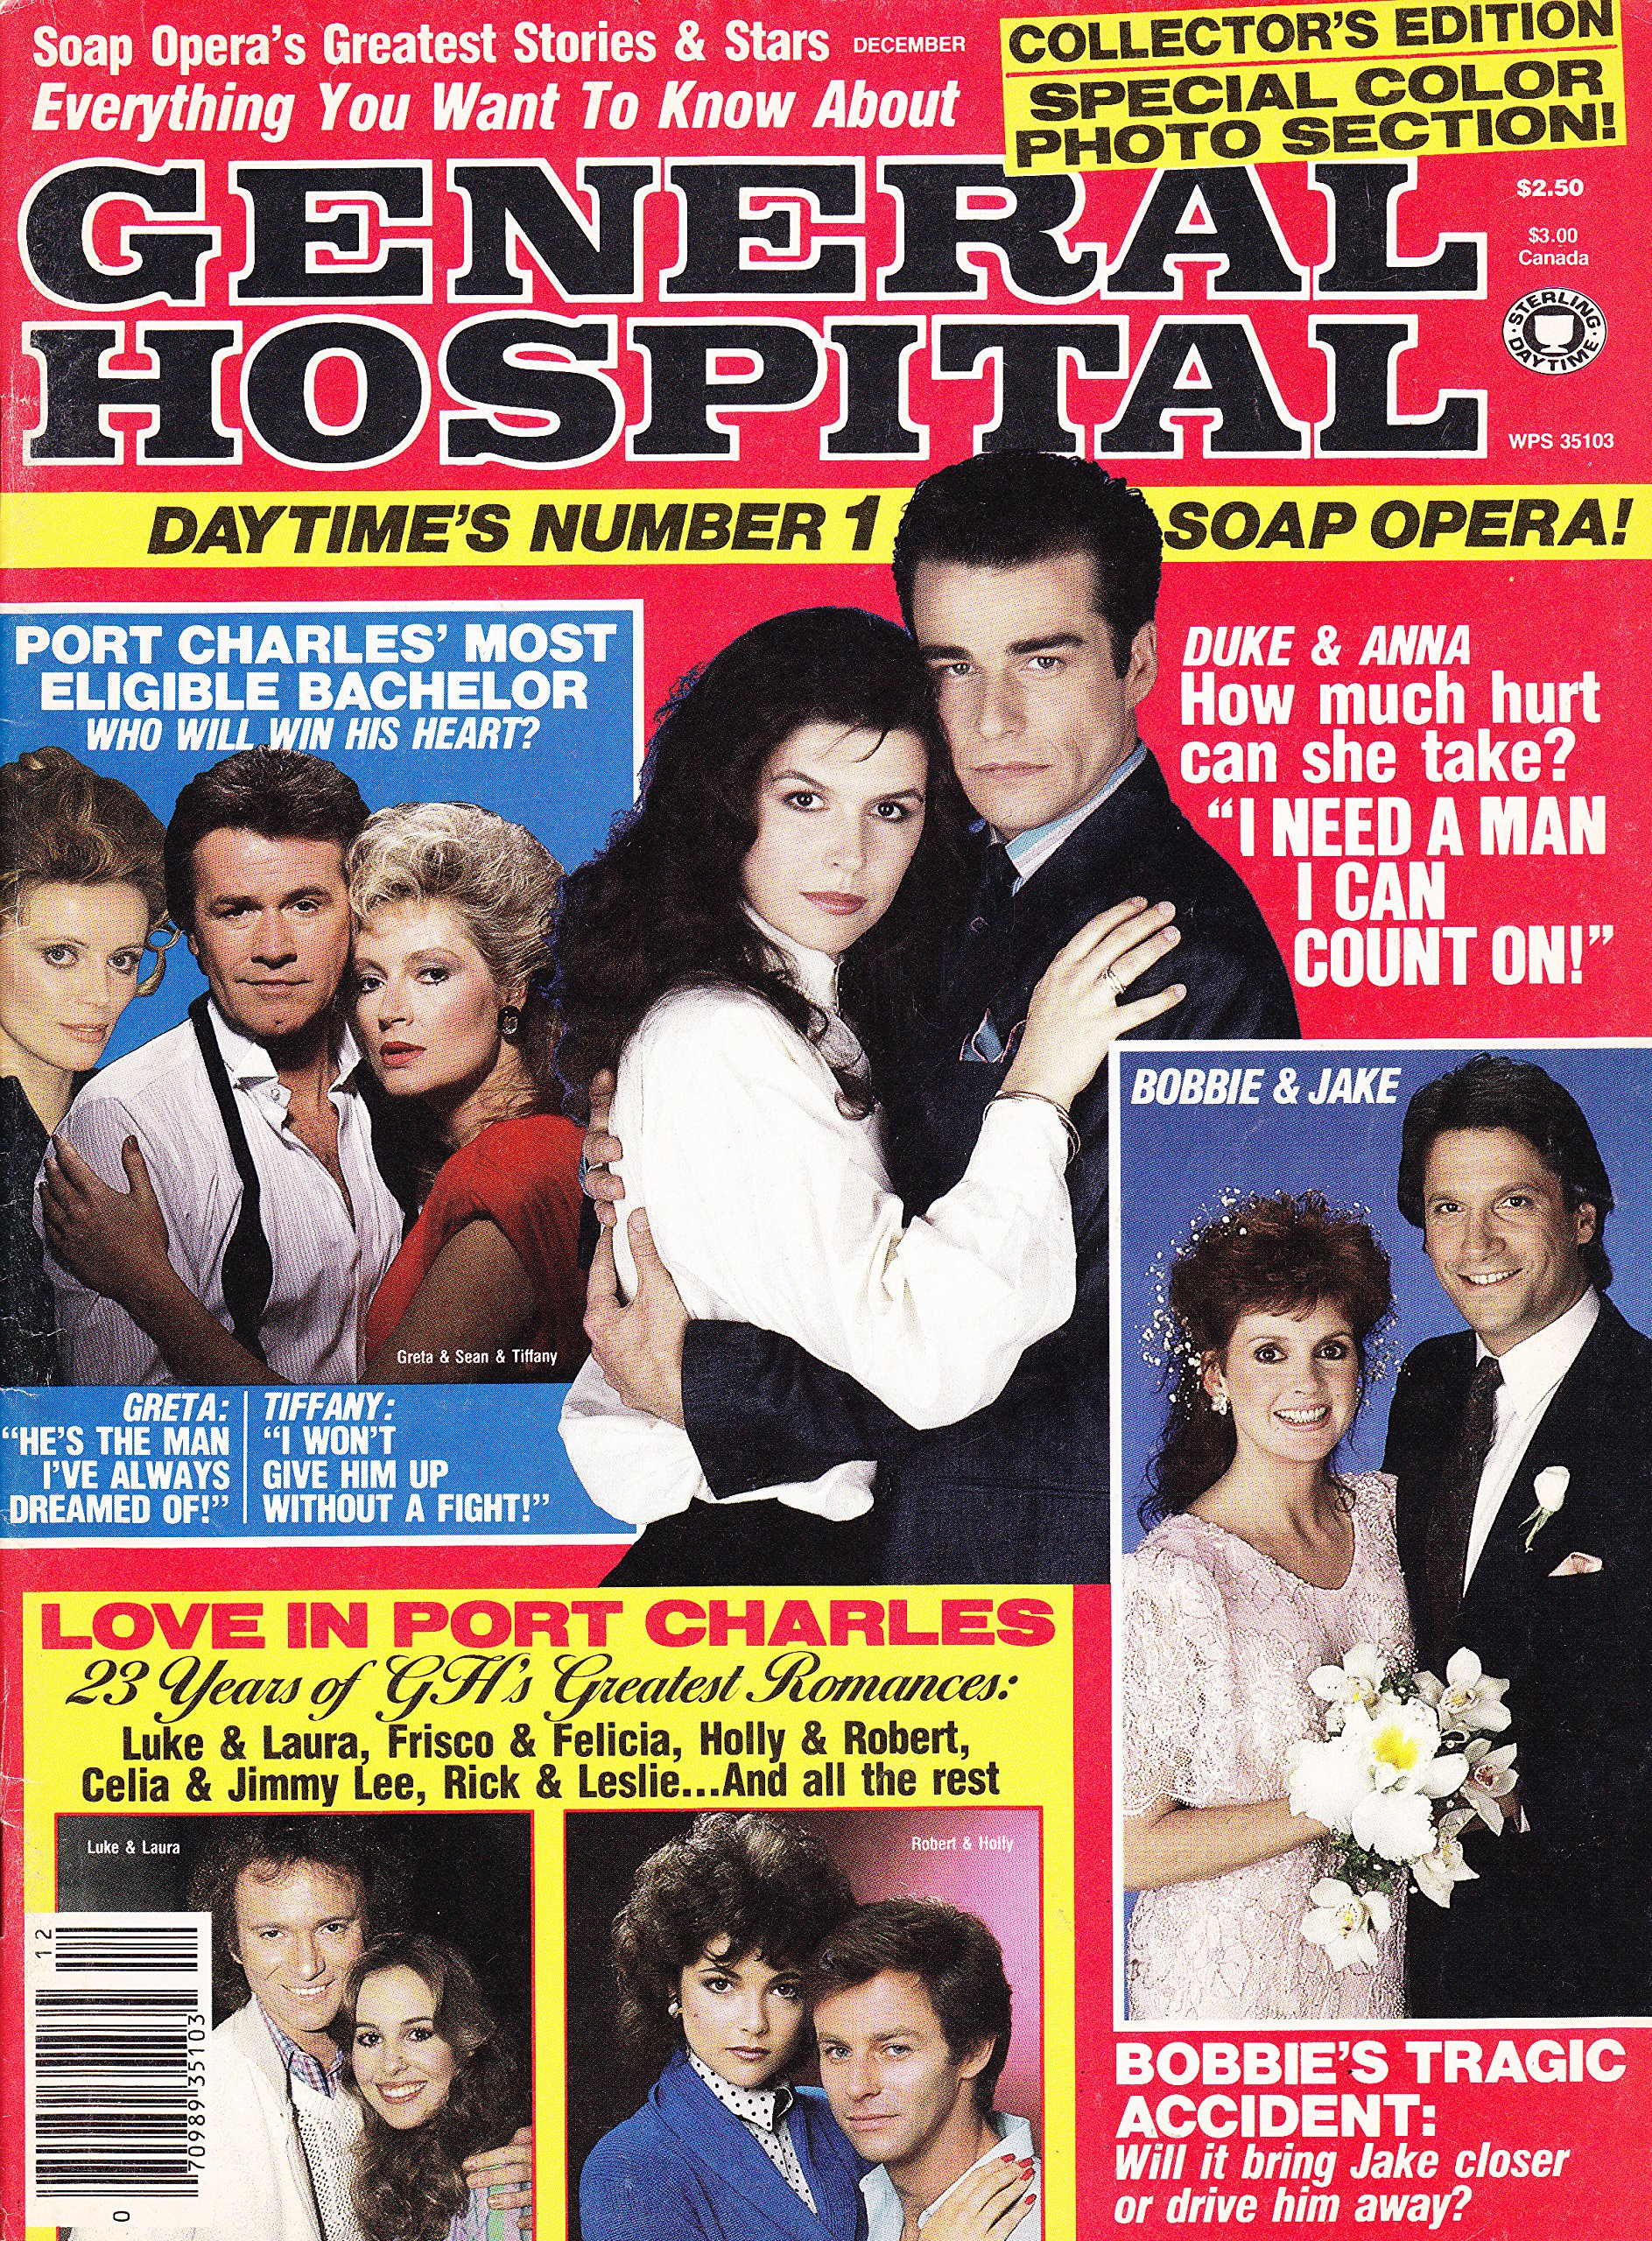 Ian Buchanan And Finola Hughes Tristan Rogers Shaun Cassidy December 1987 Everything You Want To Know About General Hospital Magazine Collector S Edition Mimi Torchin Amazon Com Books